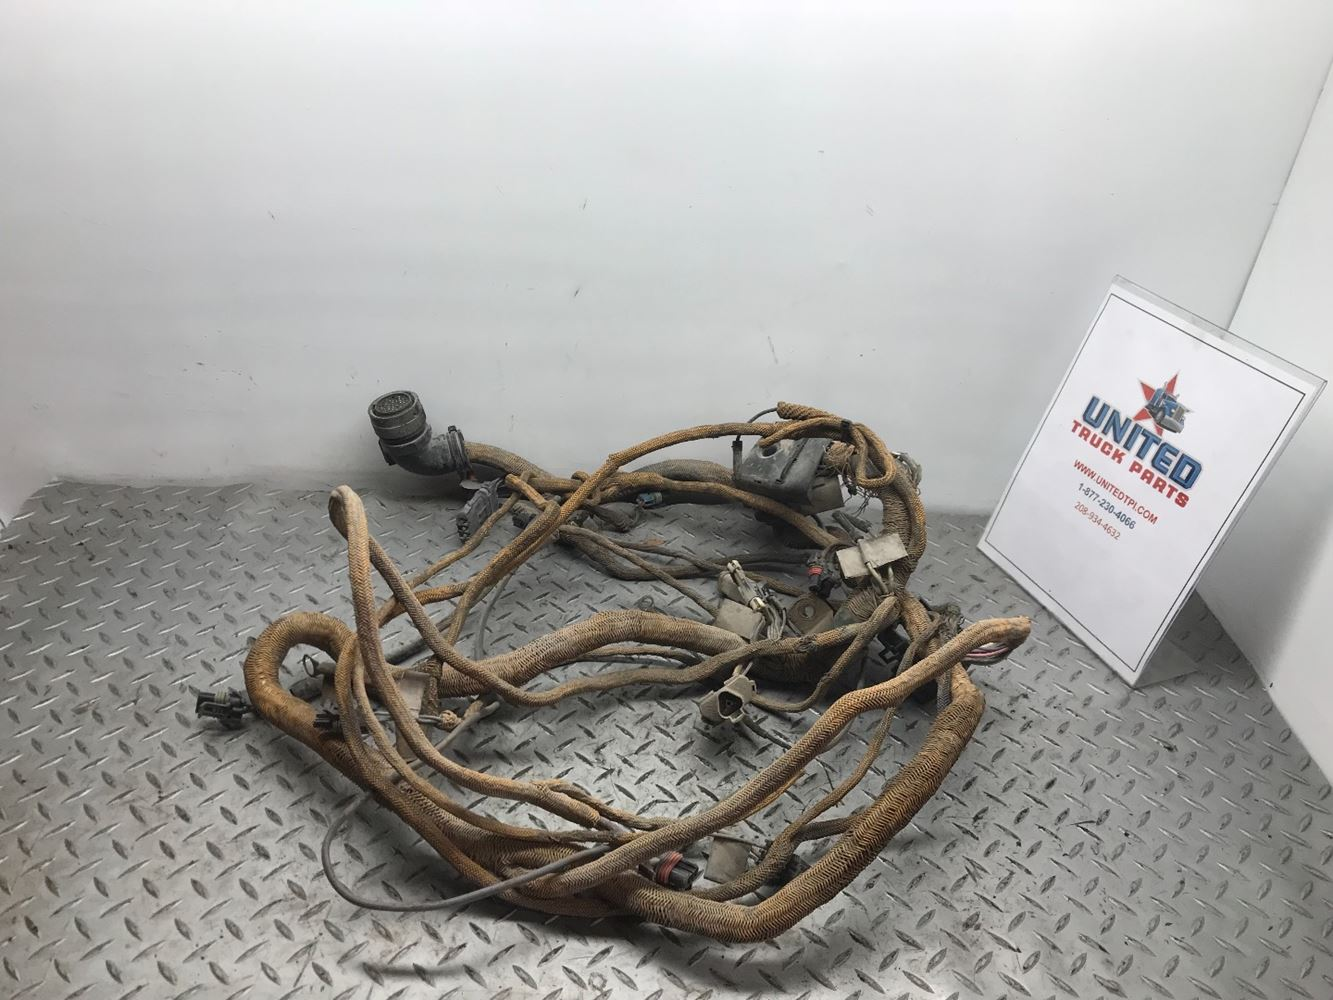 2000 Caterpillar C15 Stock Sv 18 08 40 Wiring Harnesses Tpi Harness 16 July 2018 Image Subject To Change